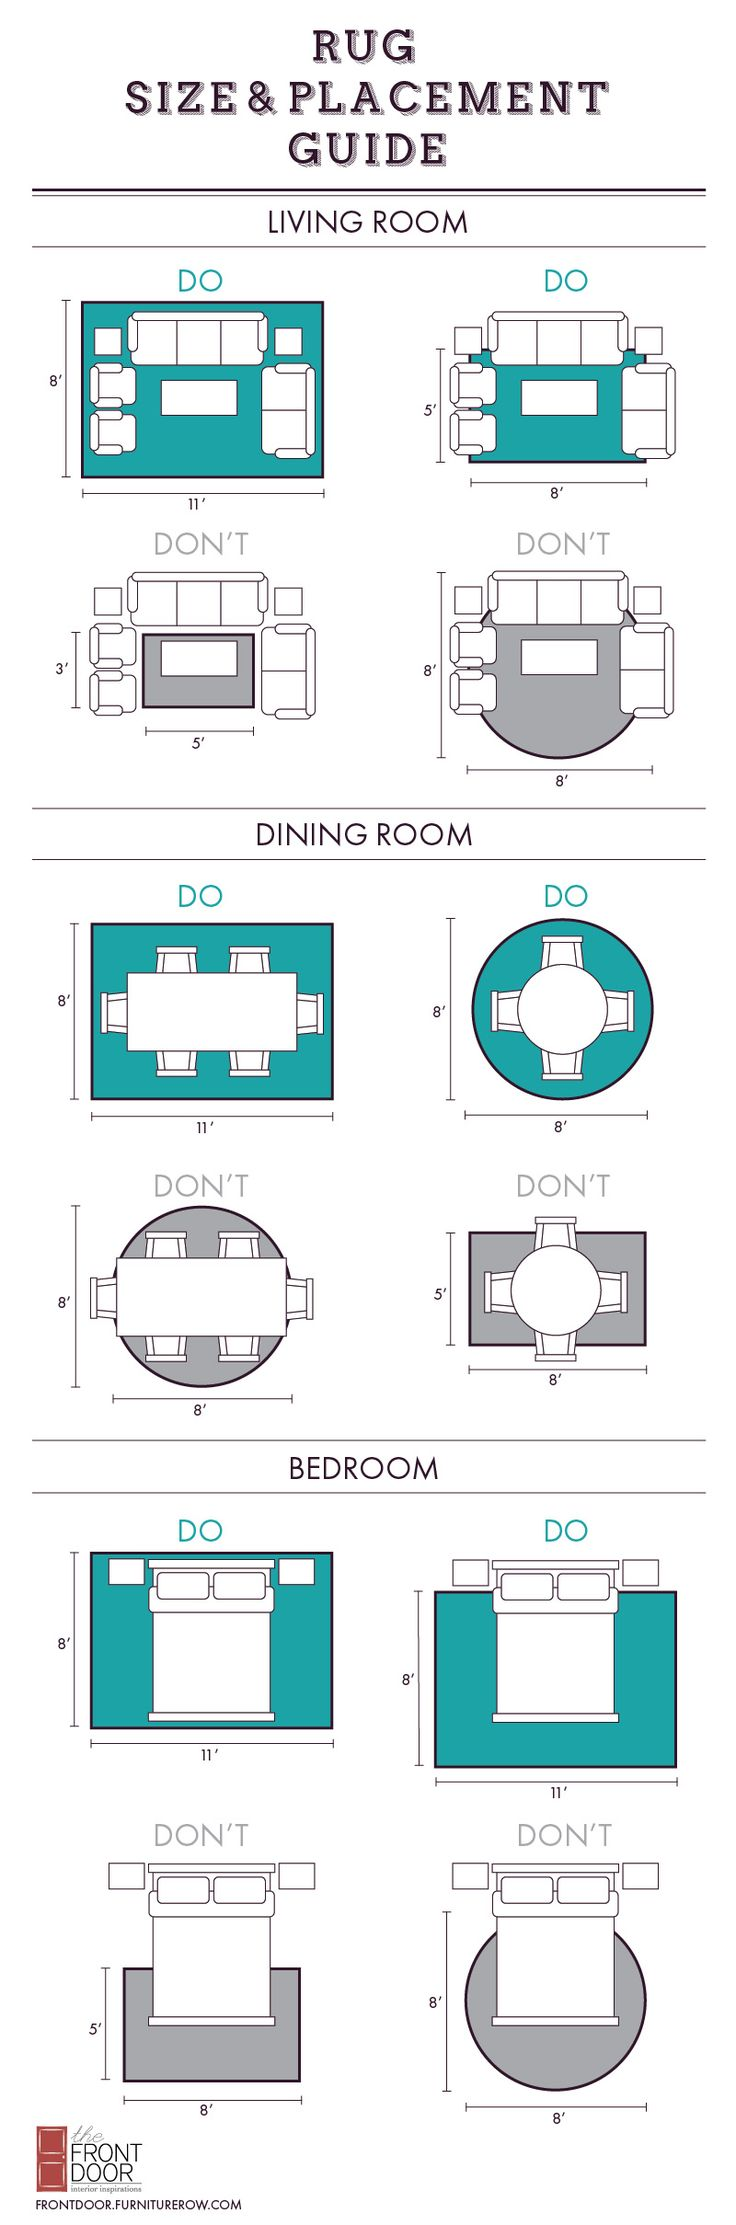 Bedroom Furniture Layout Ideas best 25+ rug placement ideas only on pinterest | area rug